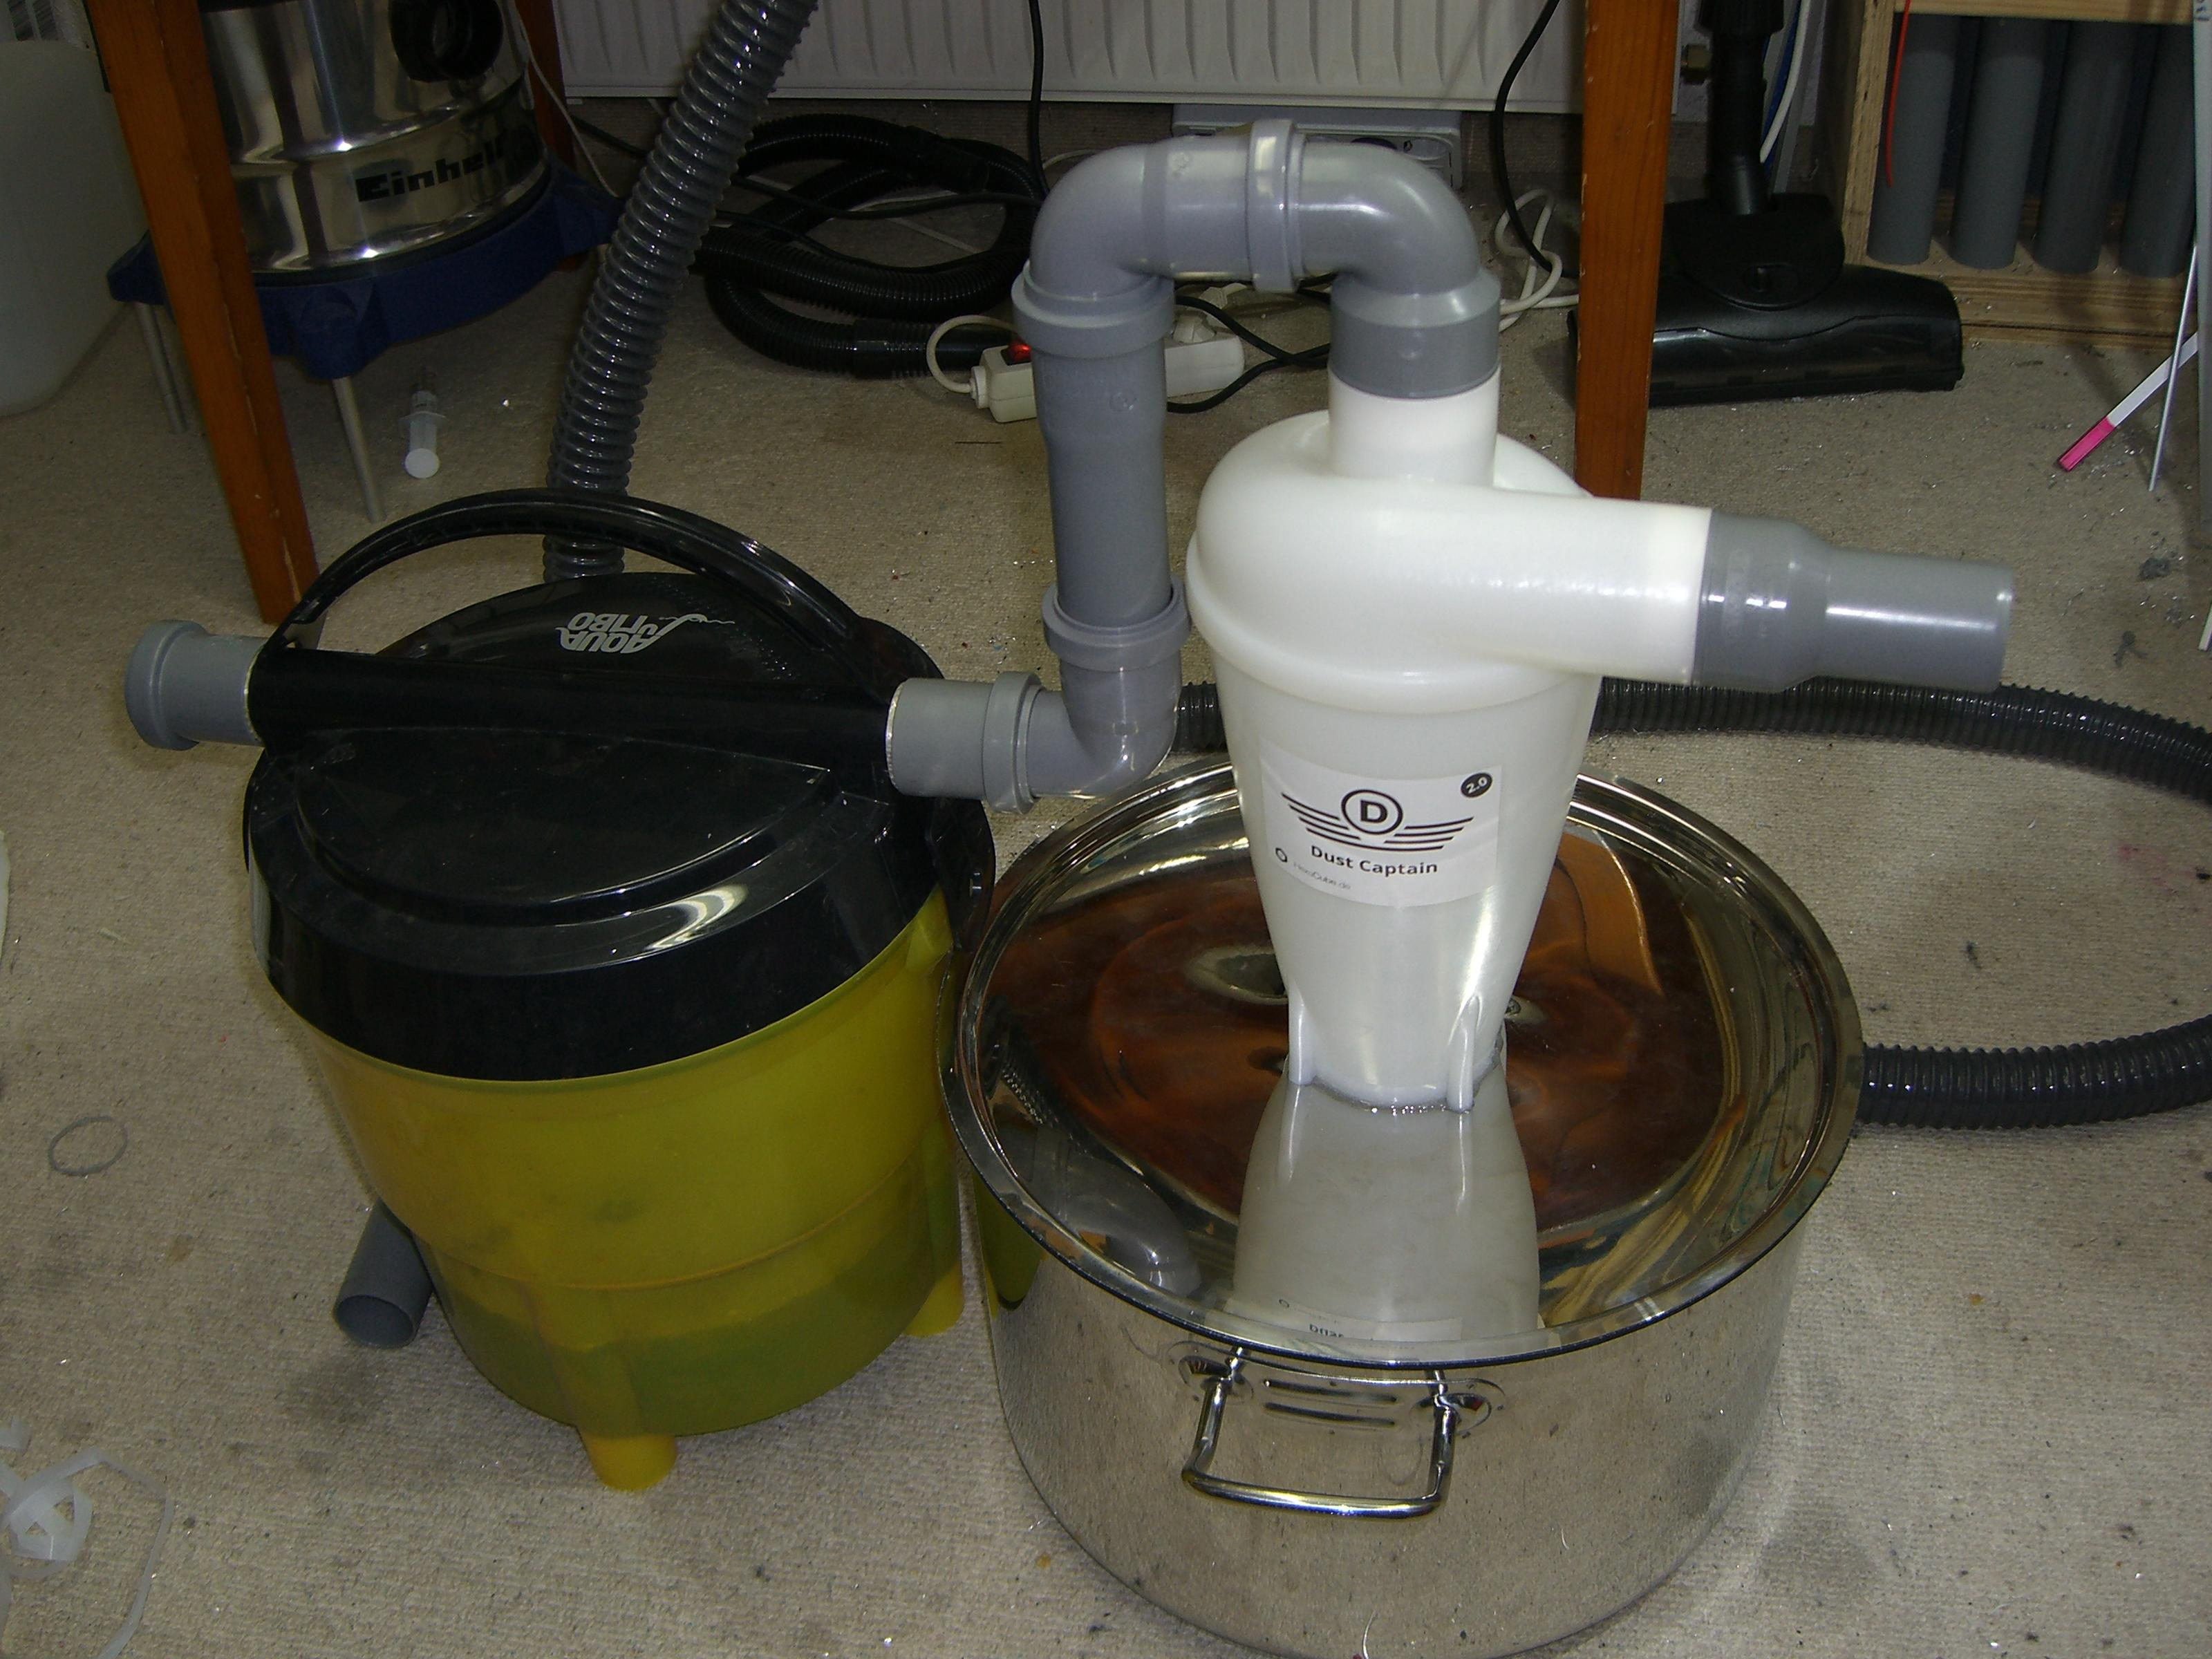 Dust Captain cyclone separator and DIY water prefilter for ...